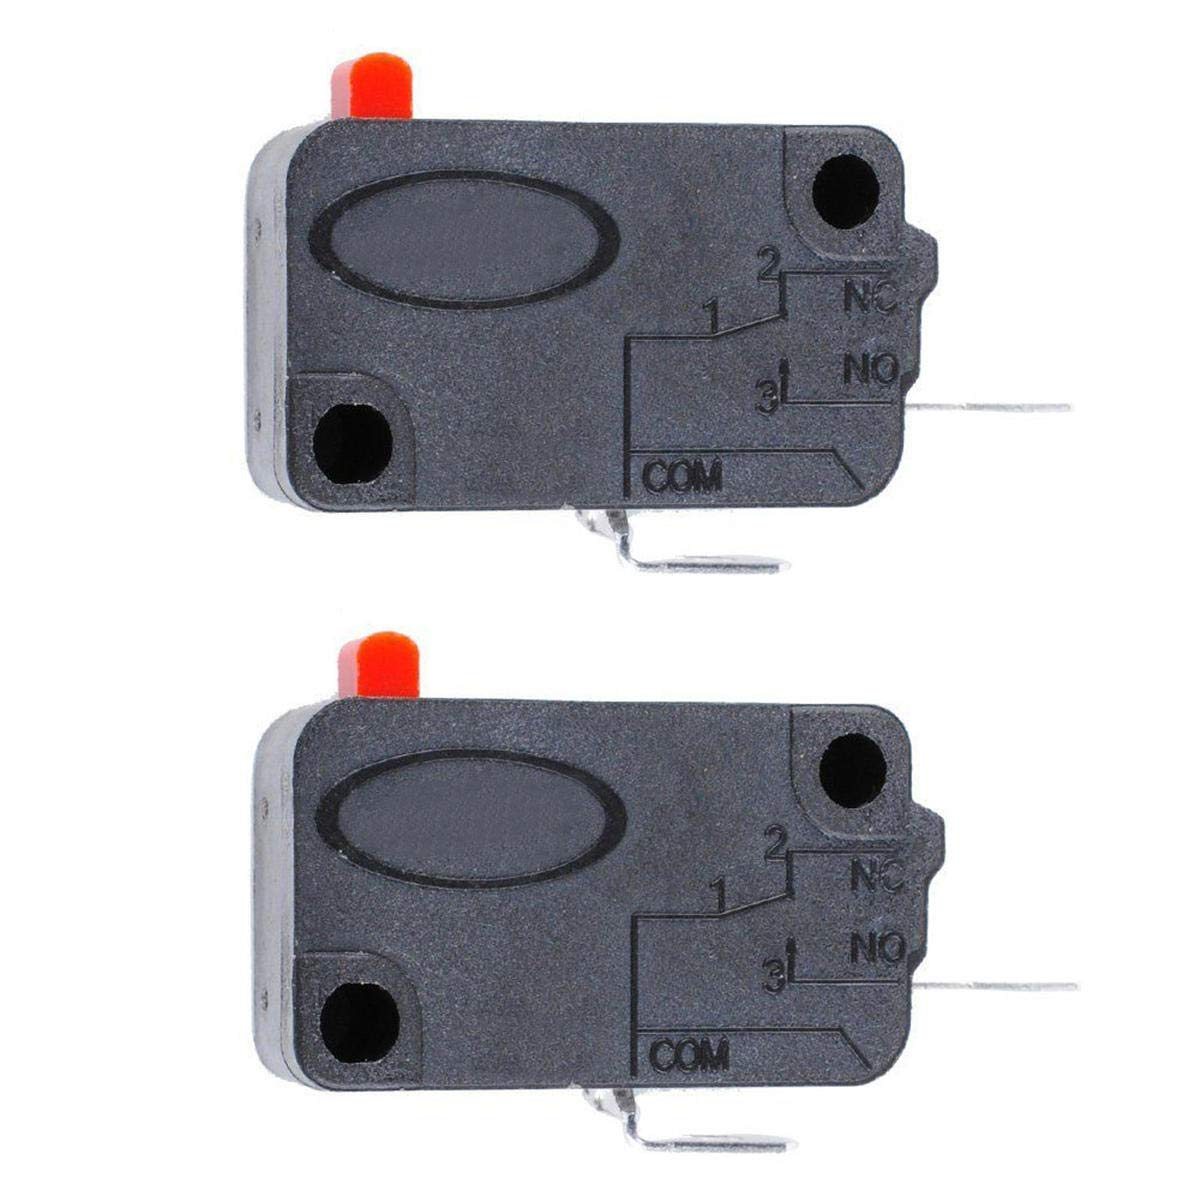 GIlH 2Pcs Microwave Oven Door Micro Switch for LG GE Starion SZM-V16-FD-63 SZM-V16-FA-63